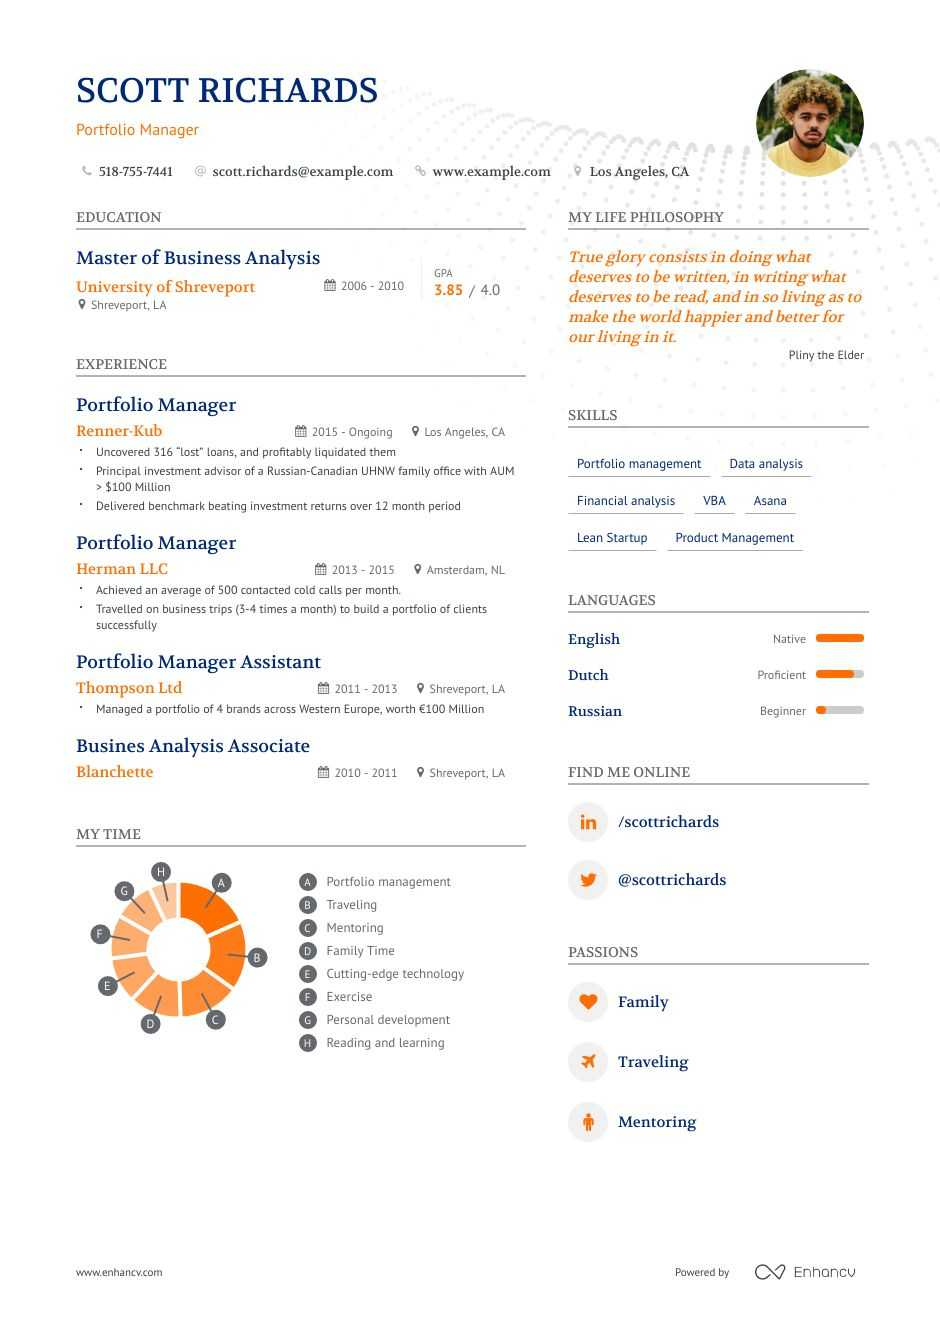 portfolio manager resume example and guide for 2020